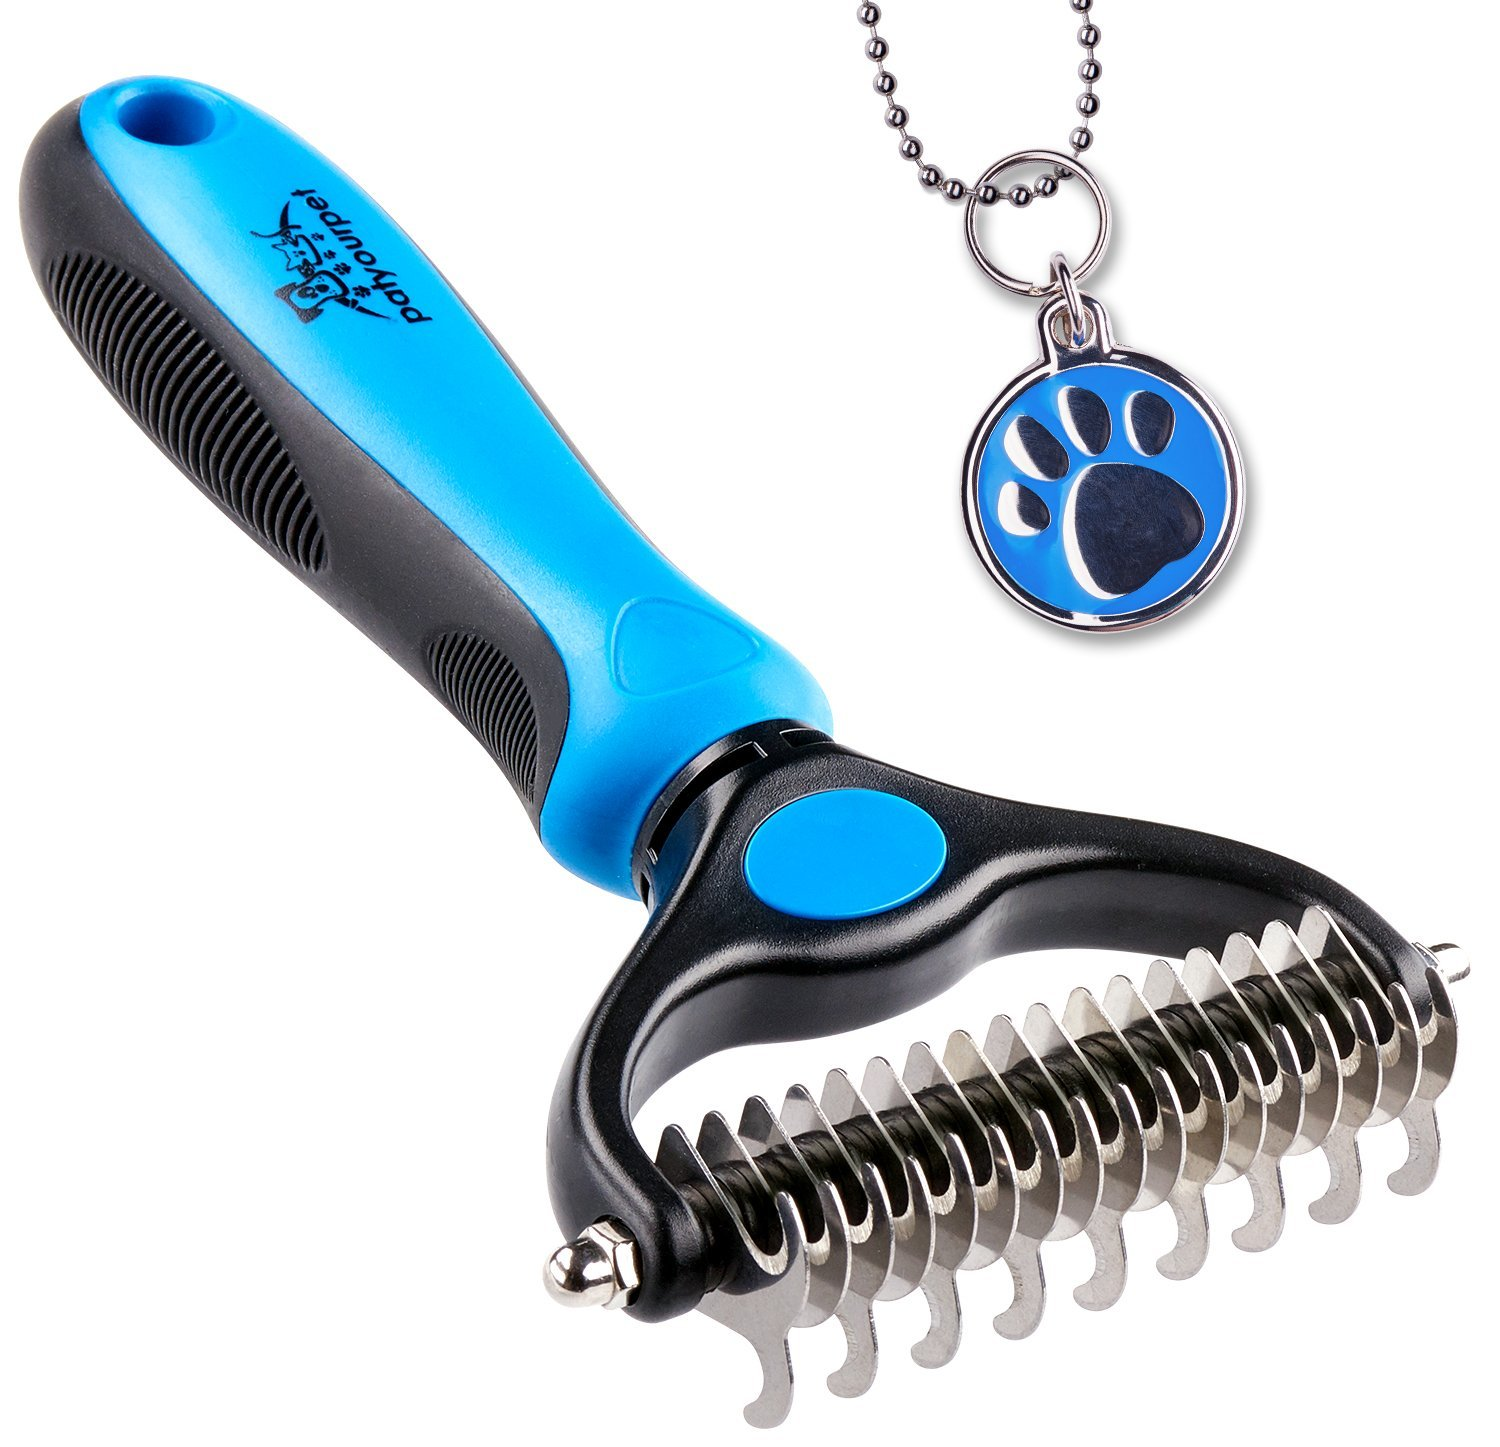 De-Matting Rake - 2-in-1 DUAL HEAD - Start with 9 teeth side for stubborn mats and tangles and finish with 17 teeth side for thinning and deshedding. Achieve faster and more professional dematting and grooming results!ABSOLUTELY SAFE TO YOUR PET - No-scratch rounded outside teeth gently massage the pet skin. Meanwhile, teeth inner side is sharp enough to smoothly cut through the toughest mats, tangles and knots.FORGET ABOUT SHEDDING! - Regular brushing easily removes dead undercoat so no fur goes flying. Skin massage ensures better blood circulation promoting healthy and shiny coat. Perfect for medium and long haired pets.ENJOY COMFORTABLE BRUSHING - Soft ergonomic anti-slip grip makes regular combing convenient & relaxed. No-rust stainless steel teeth are ultra DURABLE & EASY TO CLEAN.GET RID OF HAIR MESS... or GET A REFUND! - If, for whatever reason, you don't absolutely love your pet dematting rake, just contact us, and we'll refund every penny (or replace it, if there is an issue).